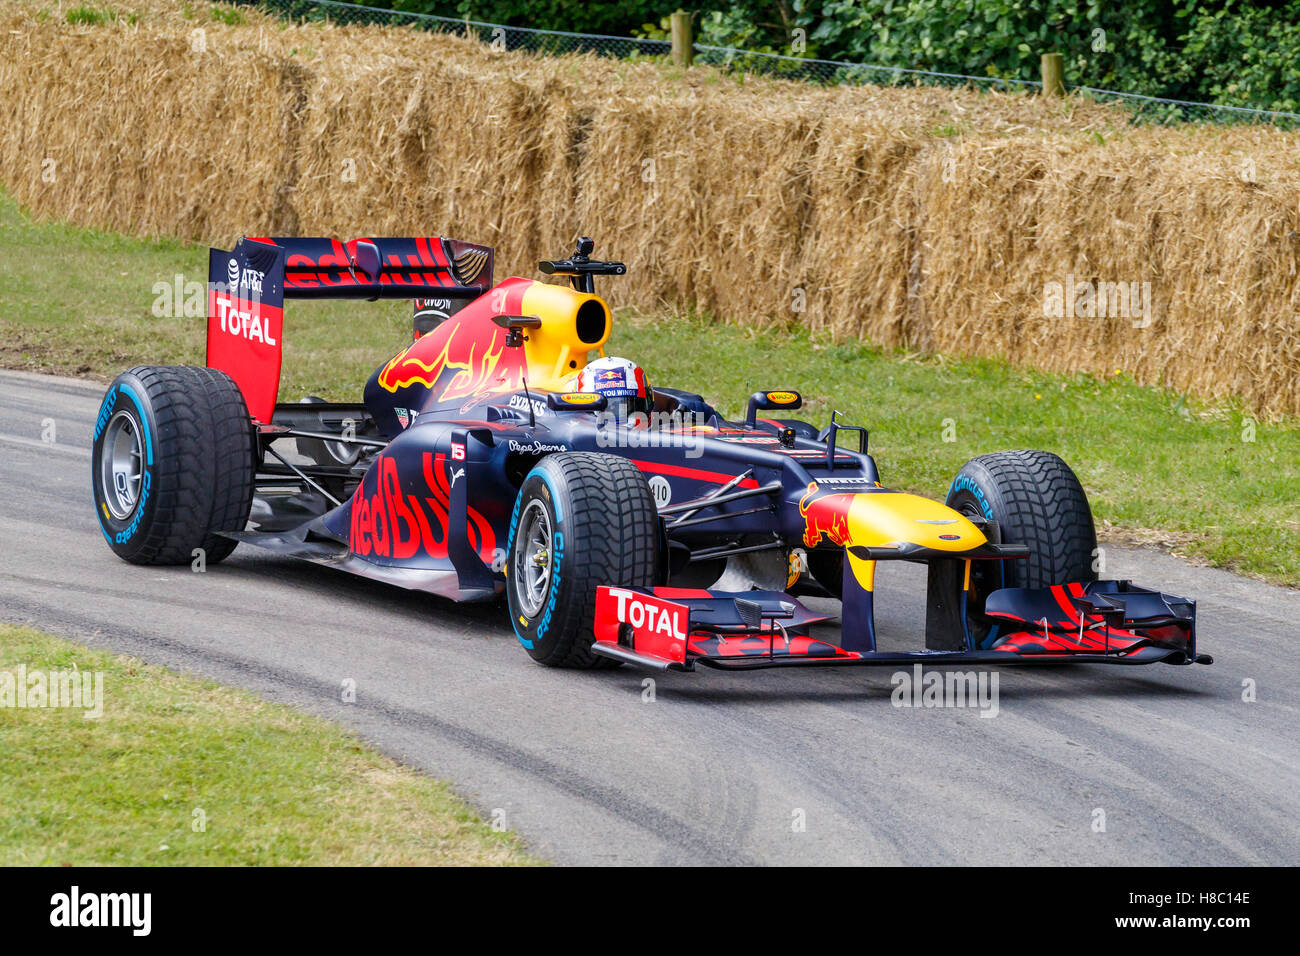 2012 red bull renault rb8 with driver pierre gasly at the 2016 stock photo 125654158 alamy. Black Bedroom Furniture Sets. Home Design Ideas